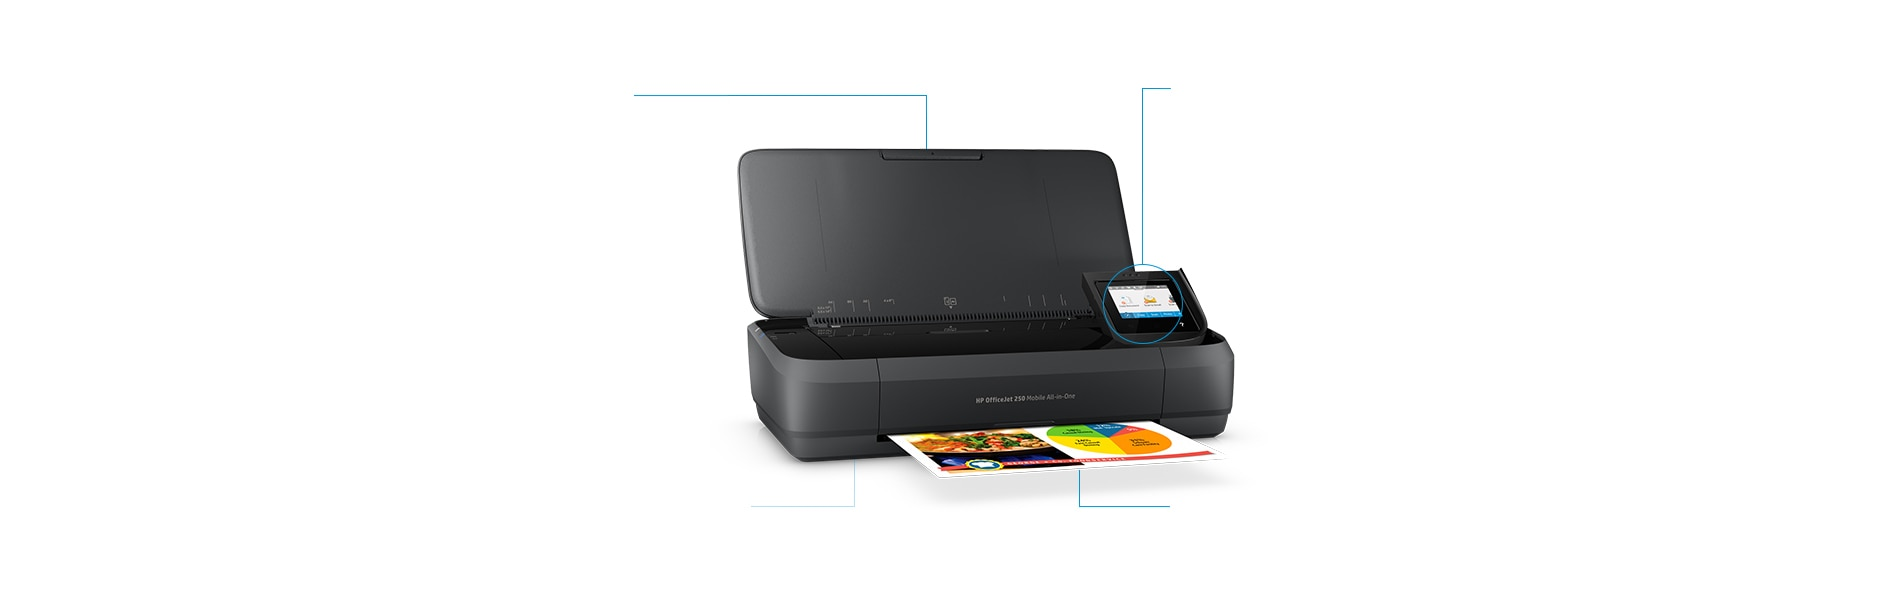 HP OfficeJet 200 series mobile printers | HP® Official Site